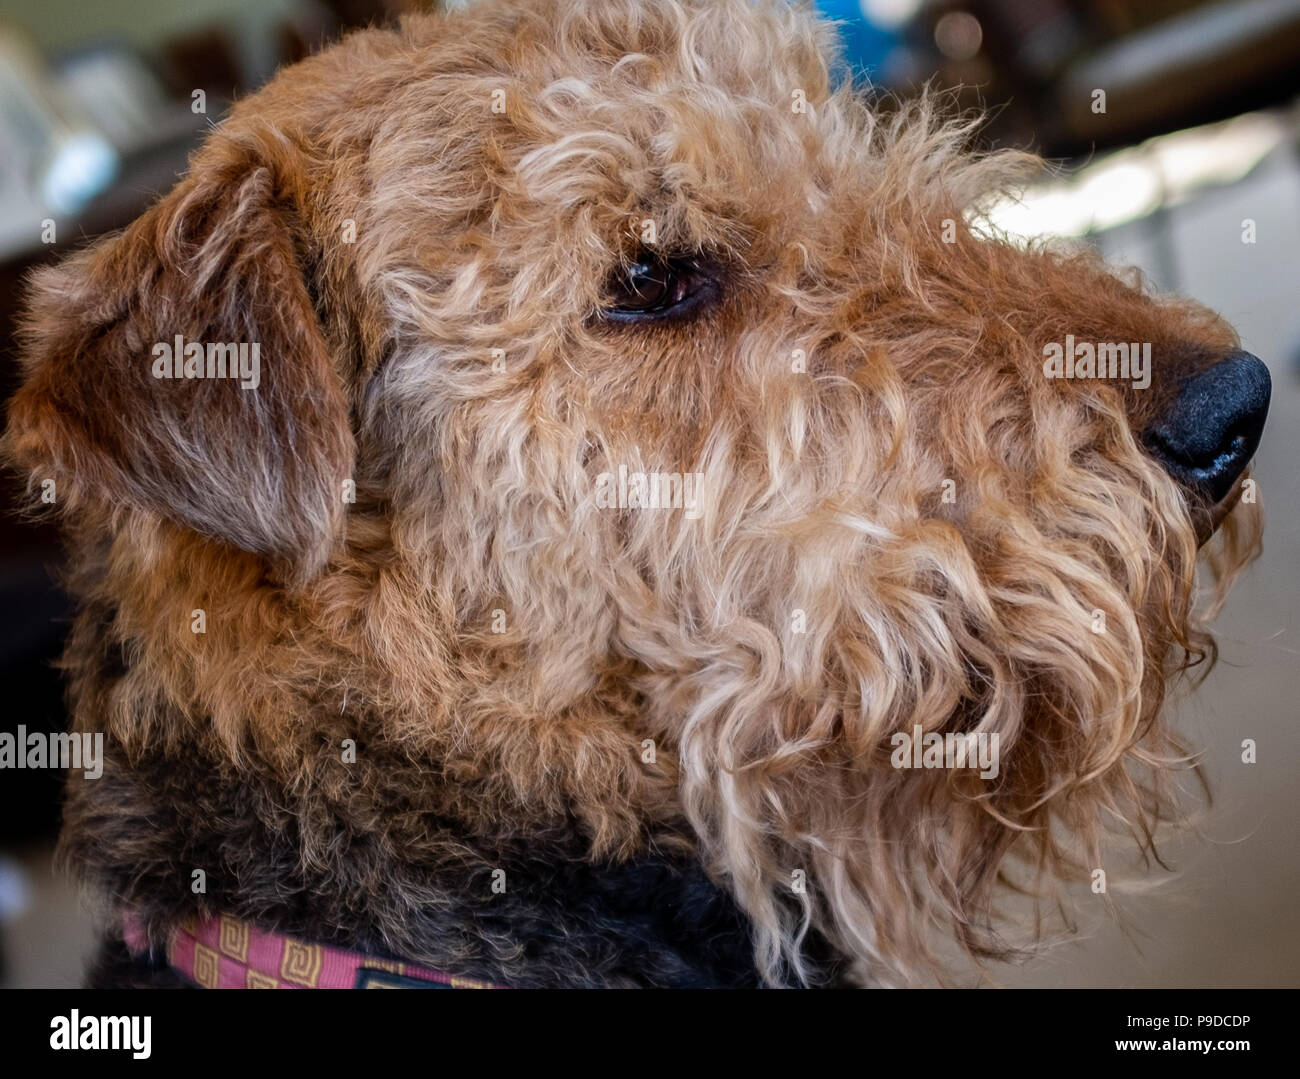 Airedale Terrier profile - Stock Image